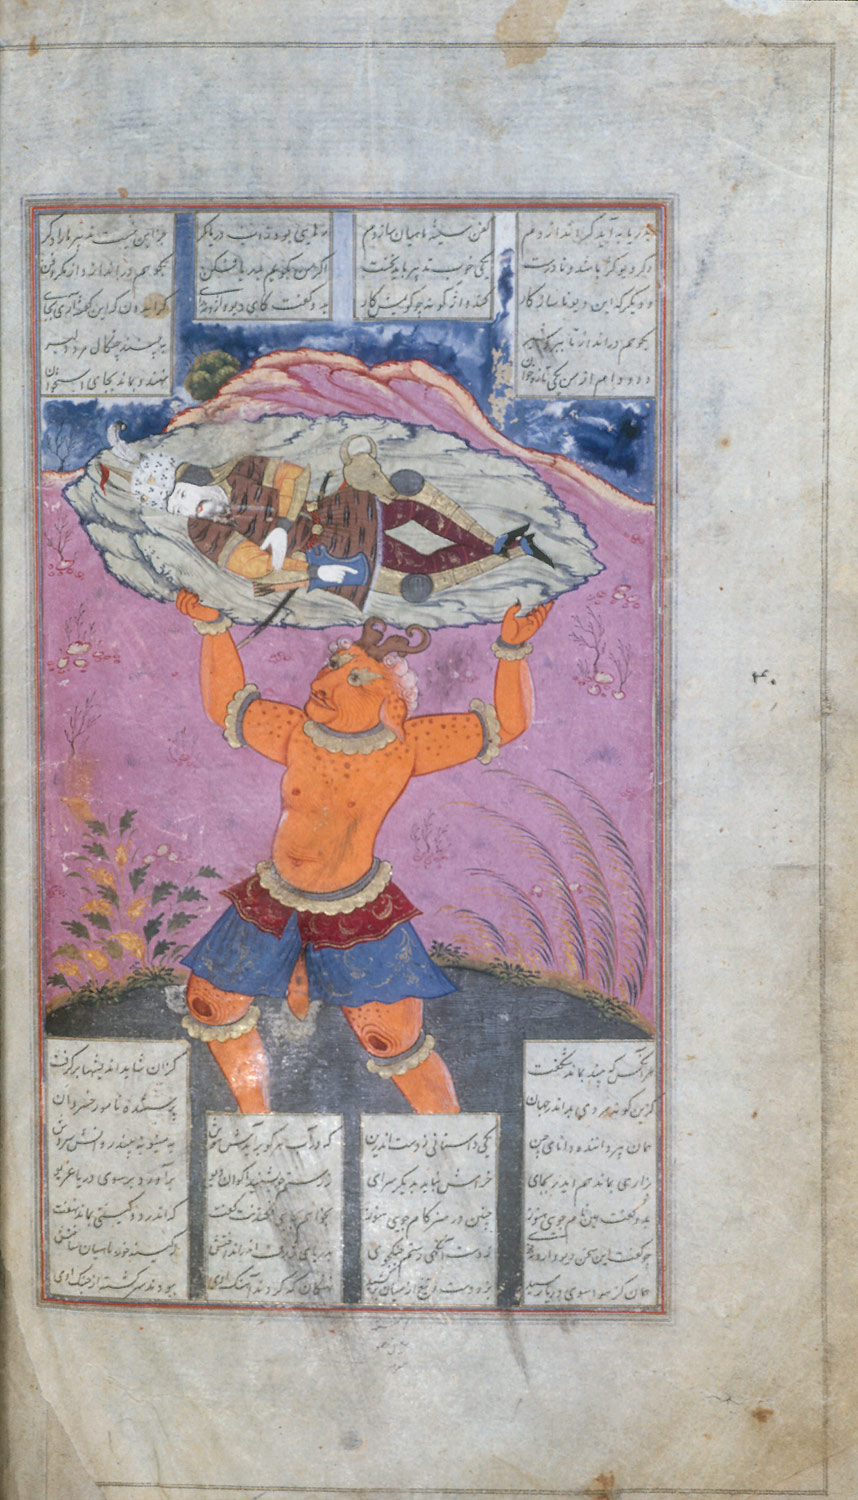 The Div Akvan Throws Rustam into the Sea: Folio 158v of the Shahnama (Book of Kings) of Firdausi